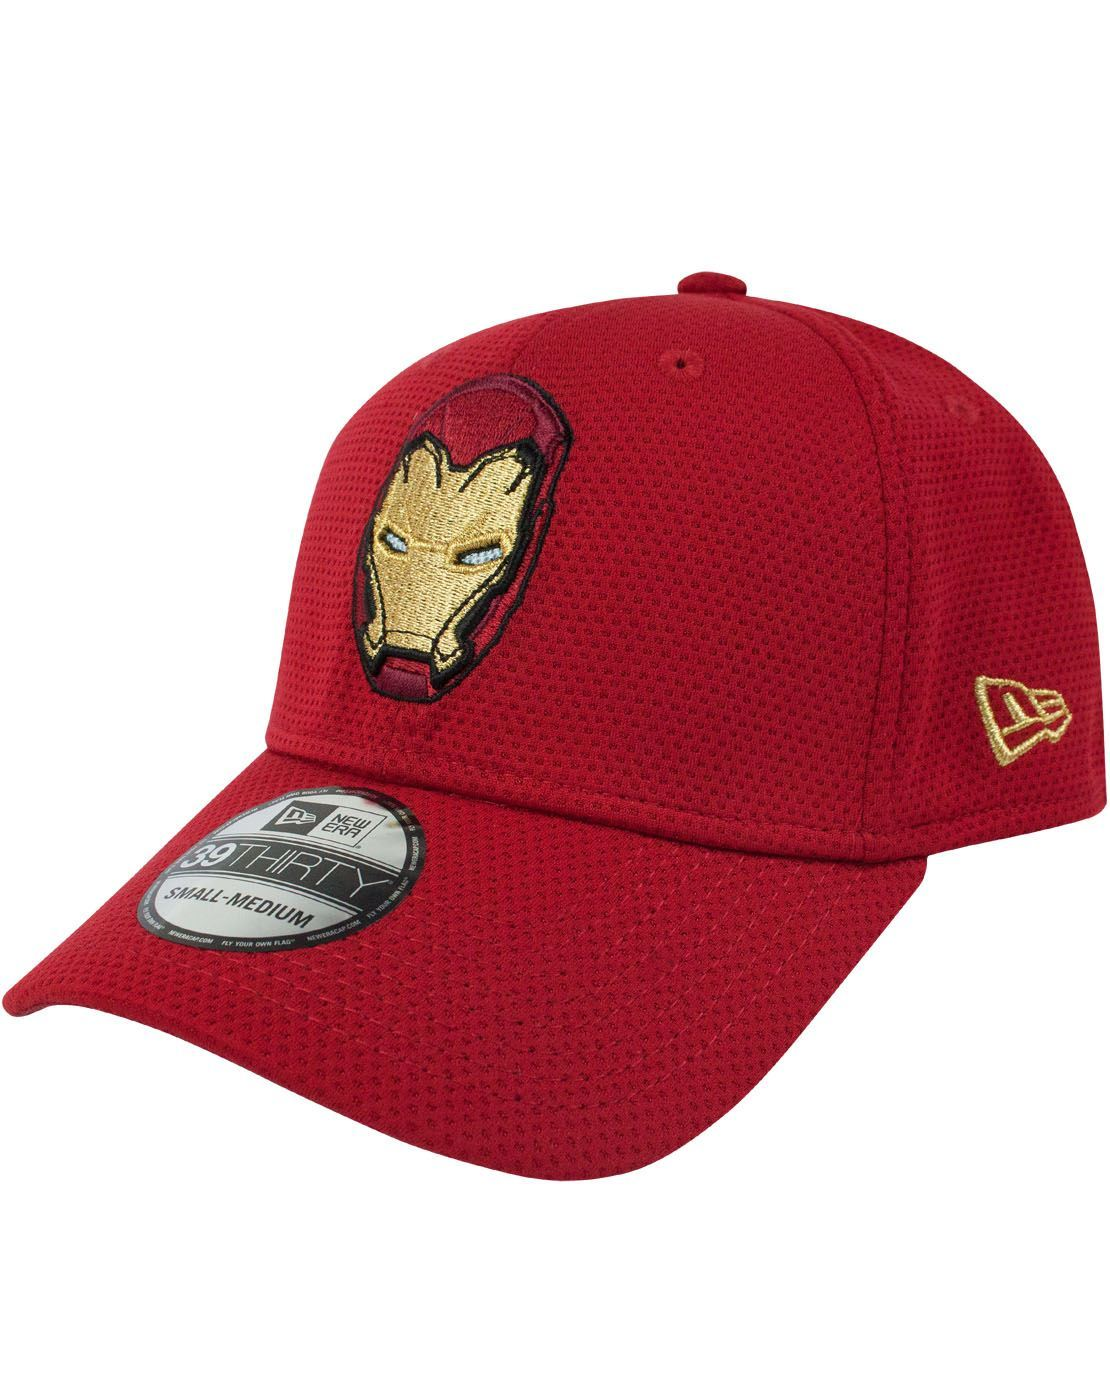 83d08b030b4 New Era 39Thirty Iron Man Logotallic Cap – Vanilla Underground